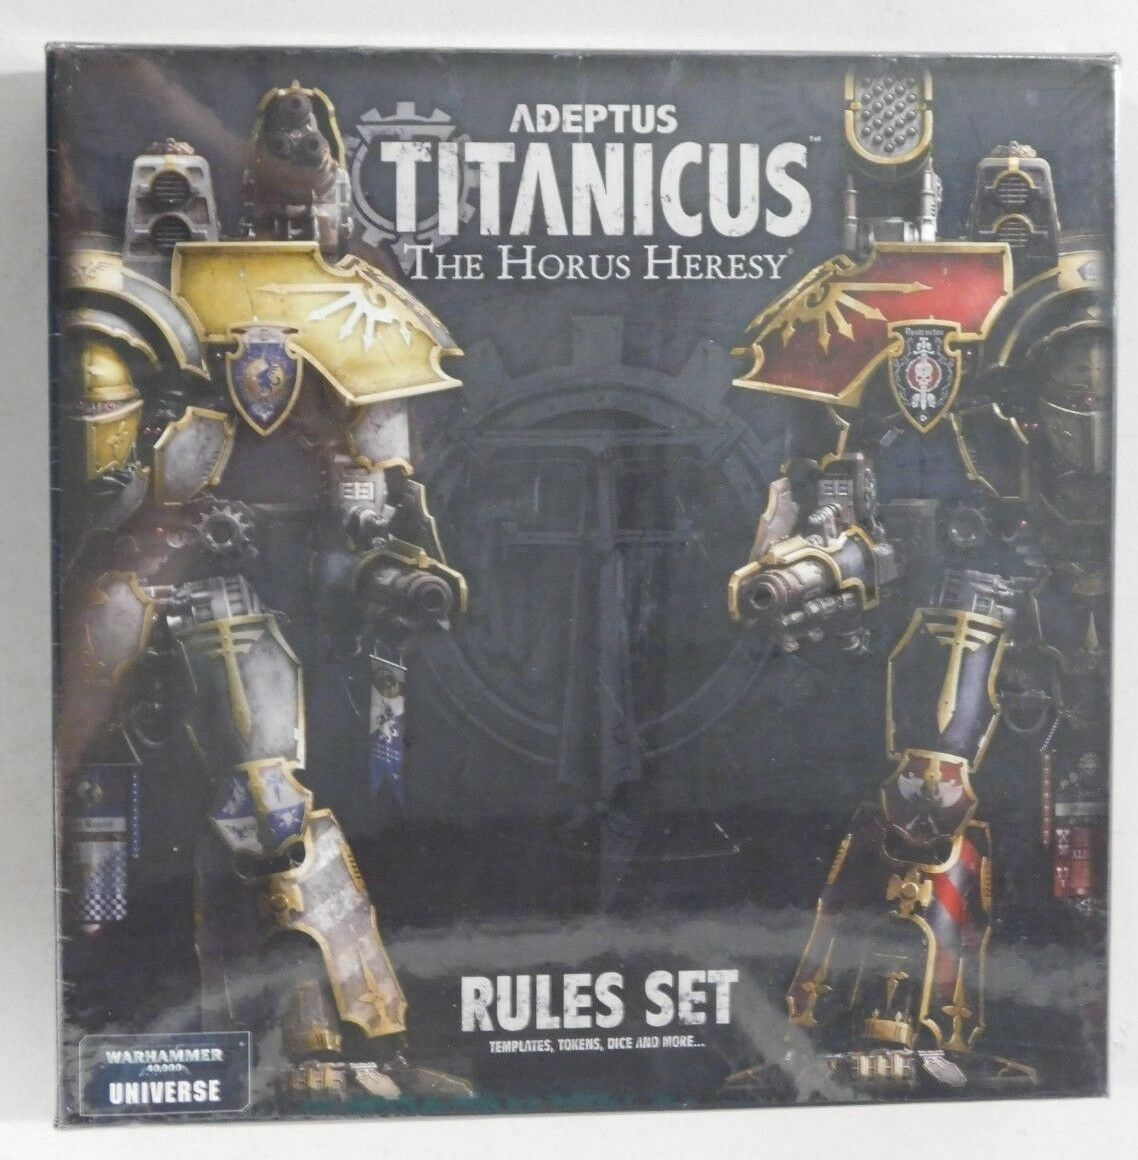 ADEPTUS TITANICUS RULES SET - Warhammer 40,000 Universe Supplement- NEW